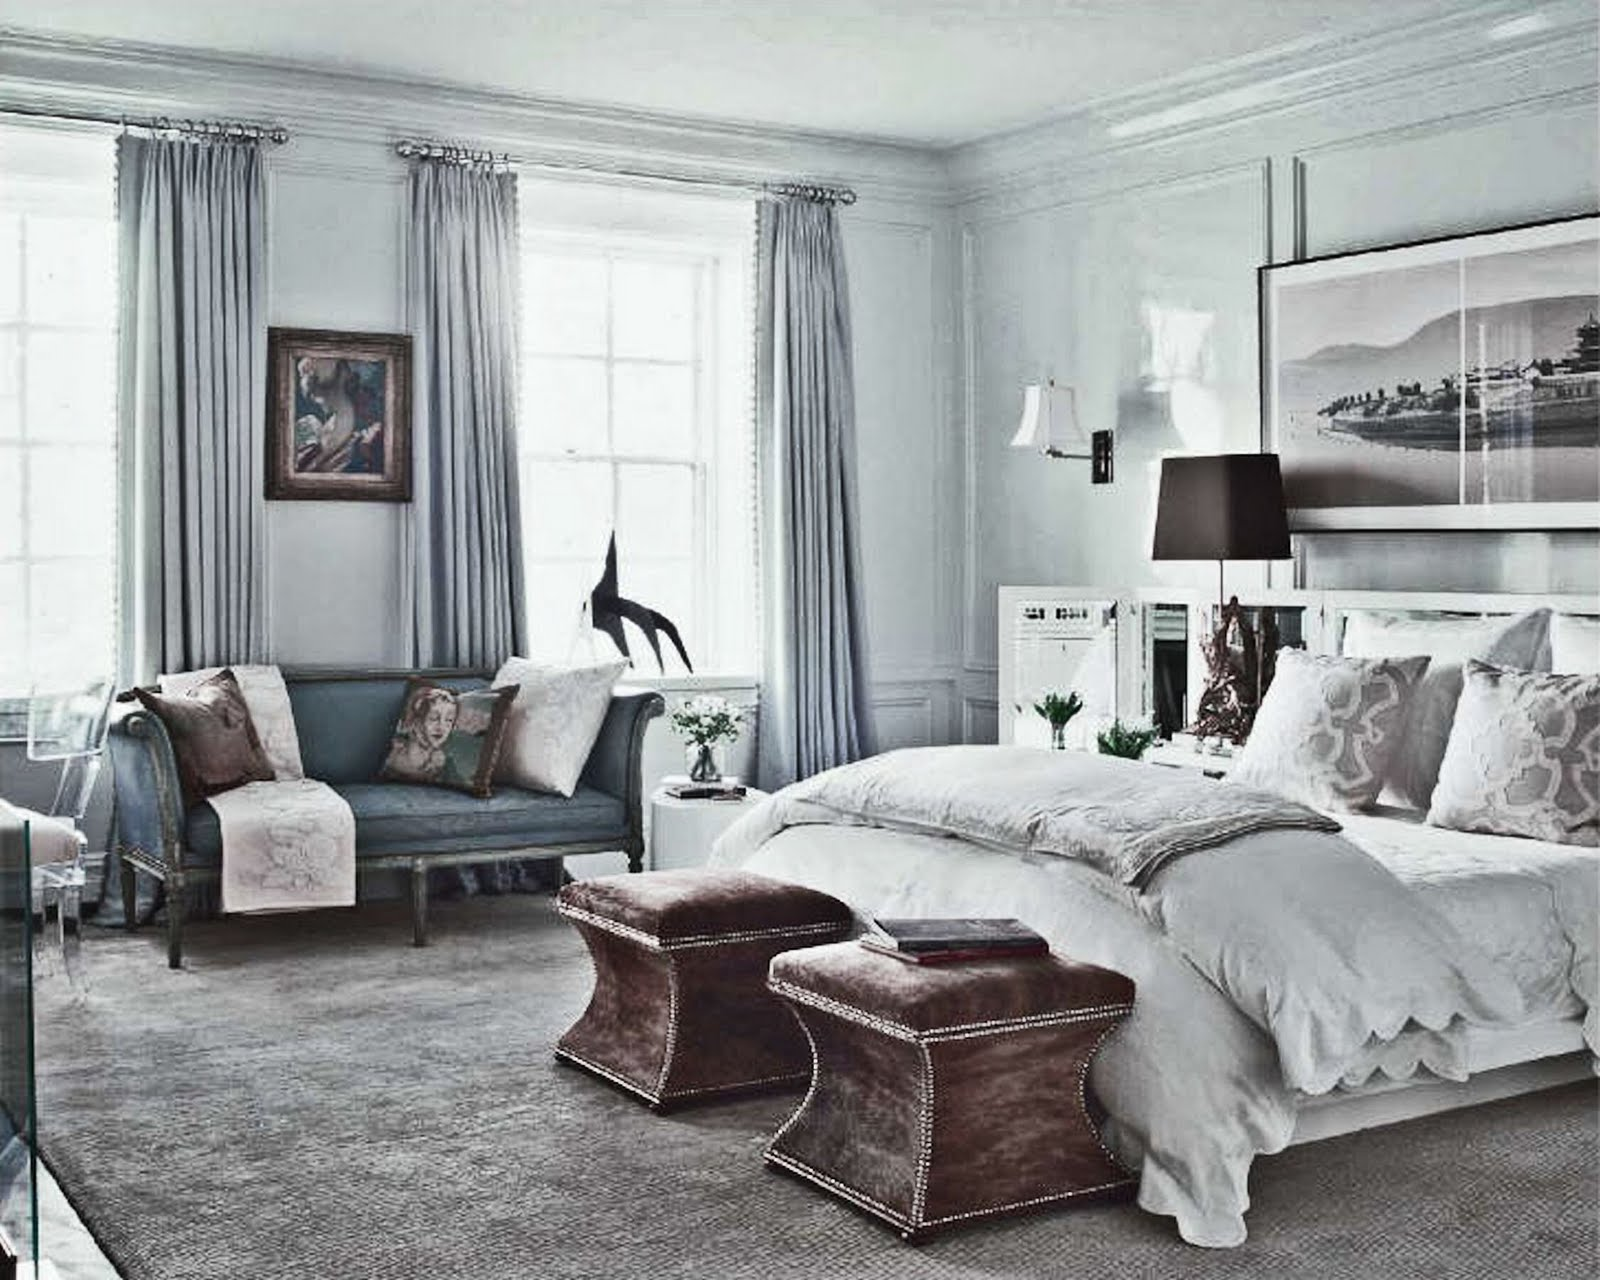 Simple everyday glamour picture perfect bedroom Picture perfect house